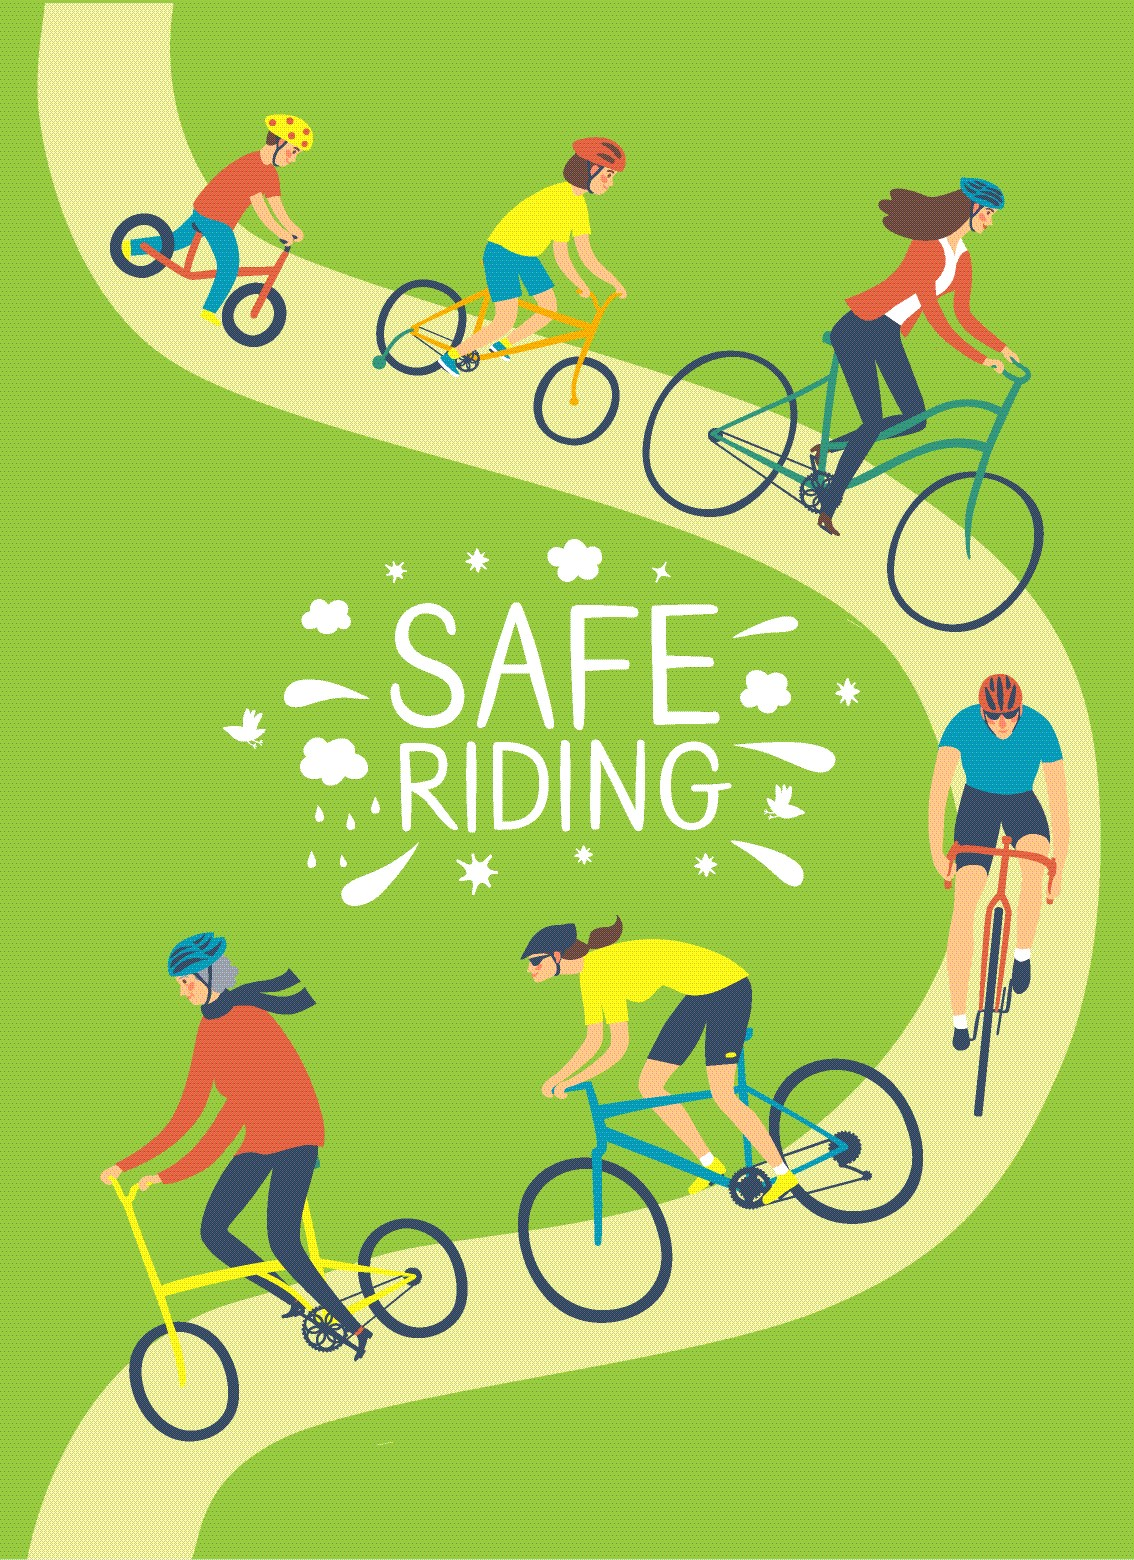 ride safely to avoid a bicycle accident